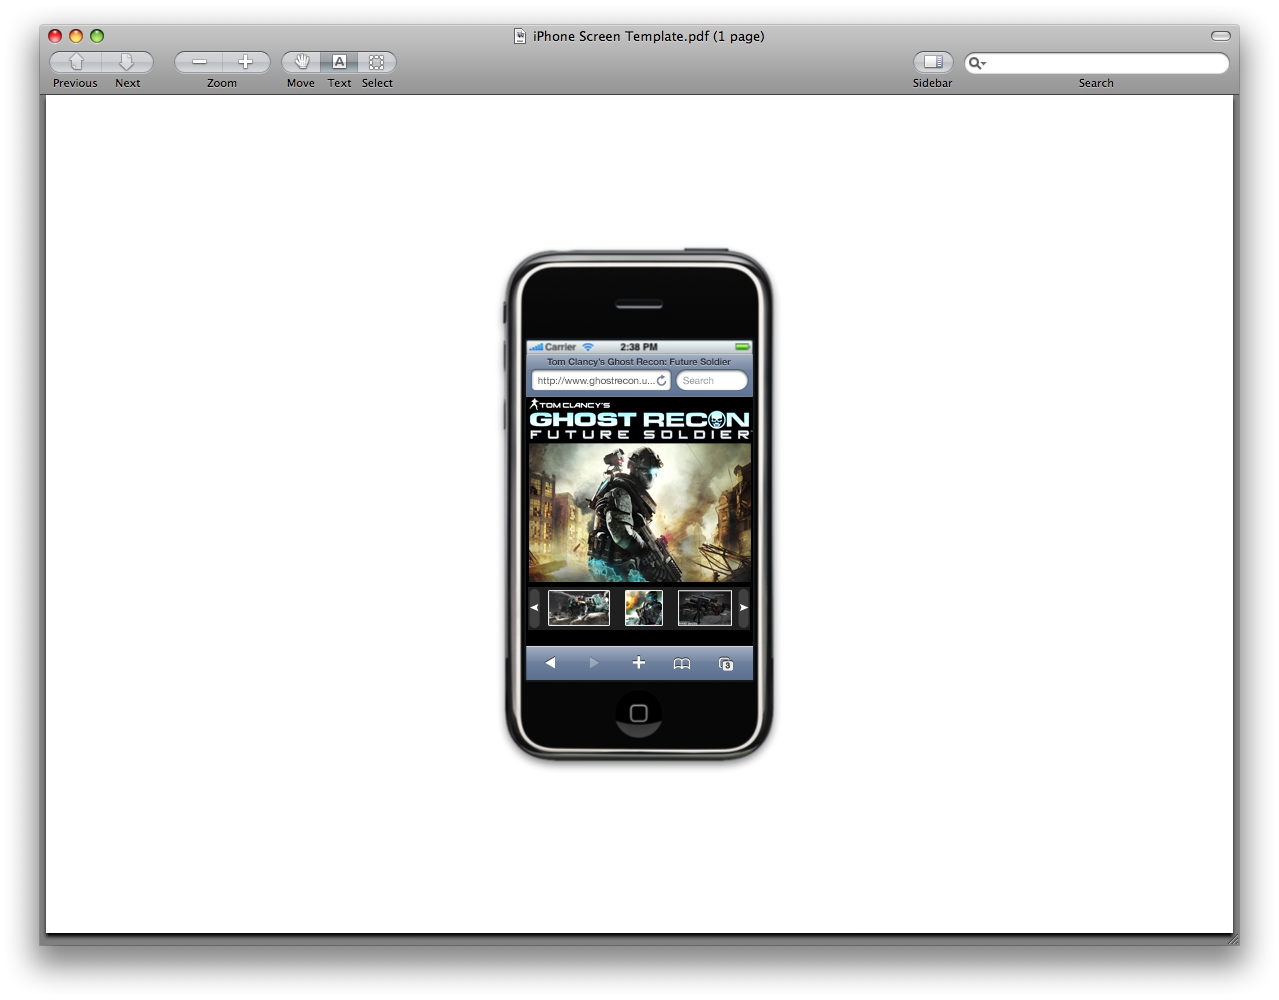 Gallery 91 Inc.: Iphone web page screen shots: Ubisoft version 2.0!